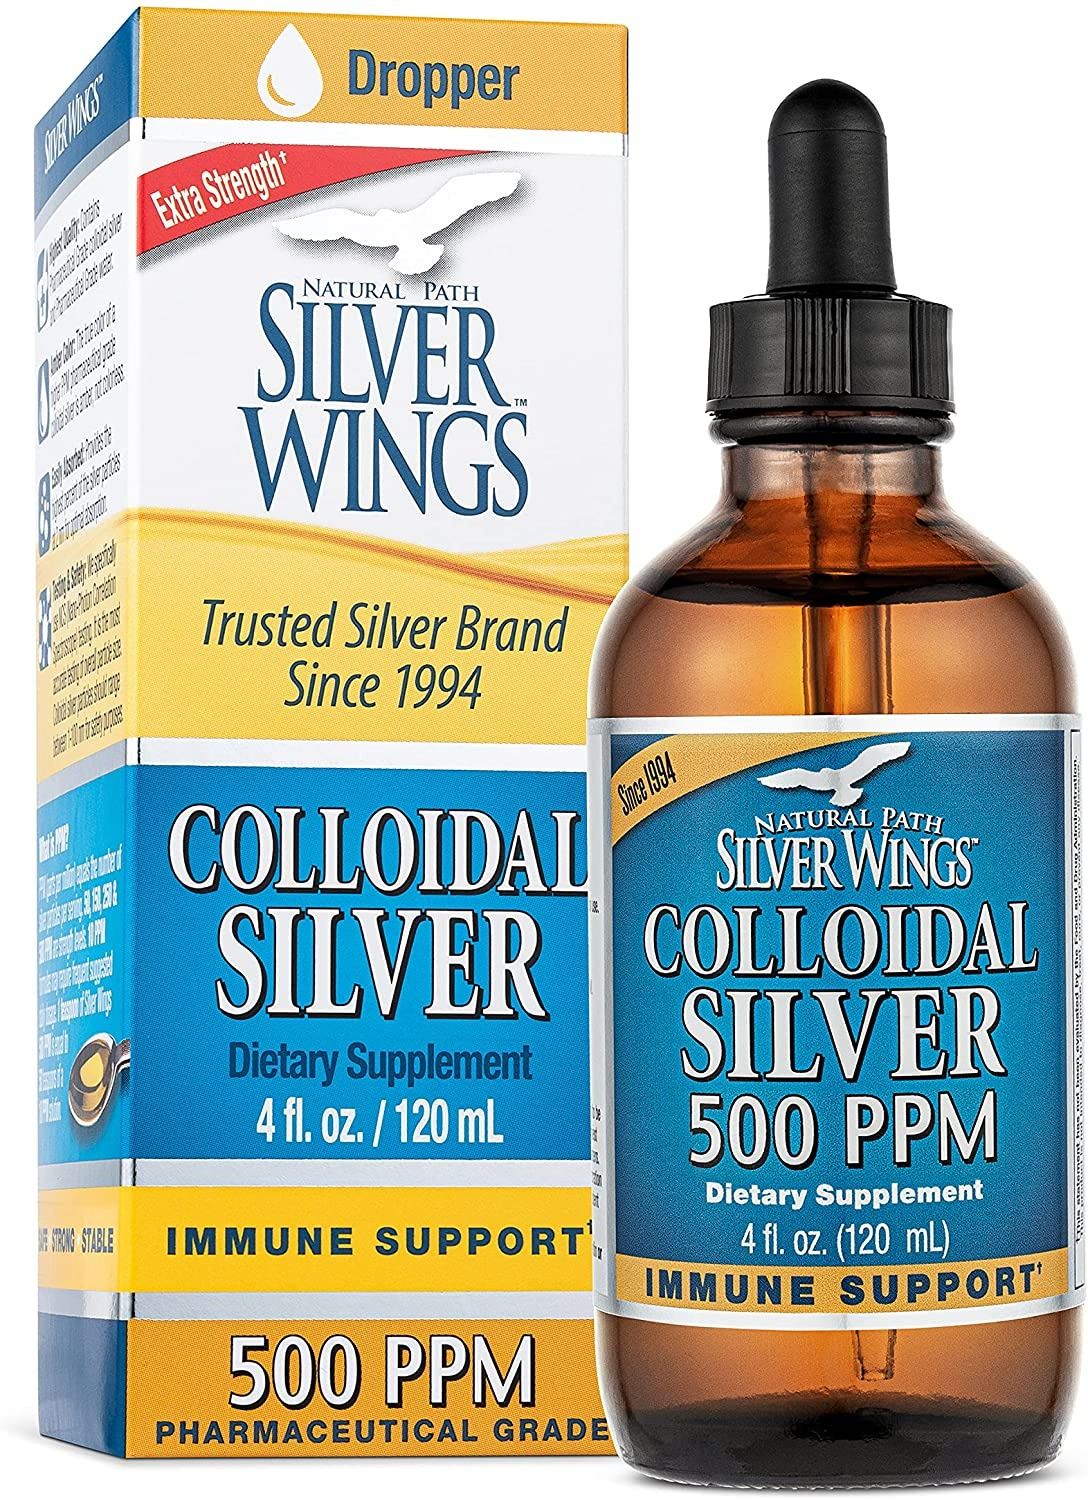 KEO BẠC NATURAL PATH SILER WINGS DIETARY MINERAL SUPPLEMENT, COLLIDAL SILVER, 500 PPM